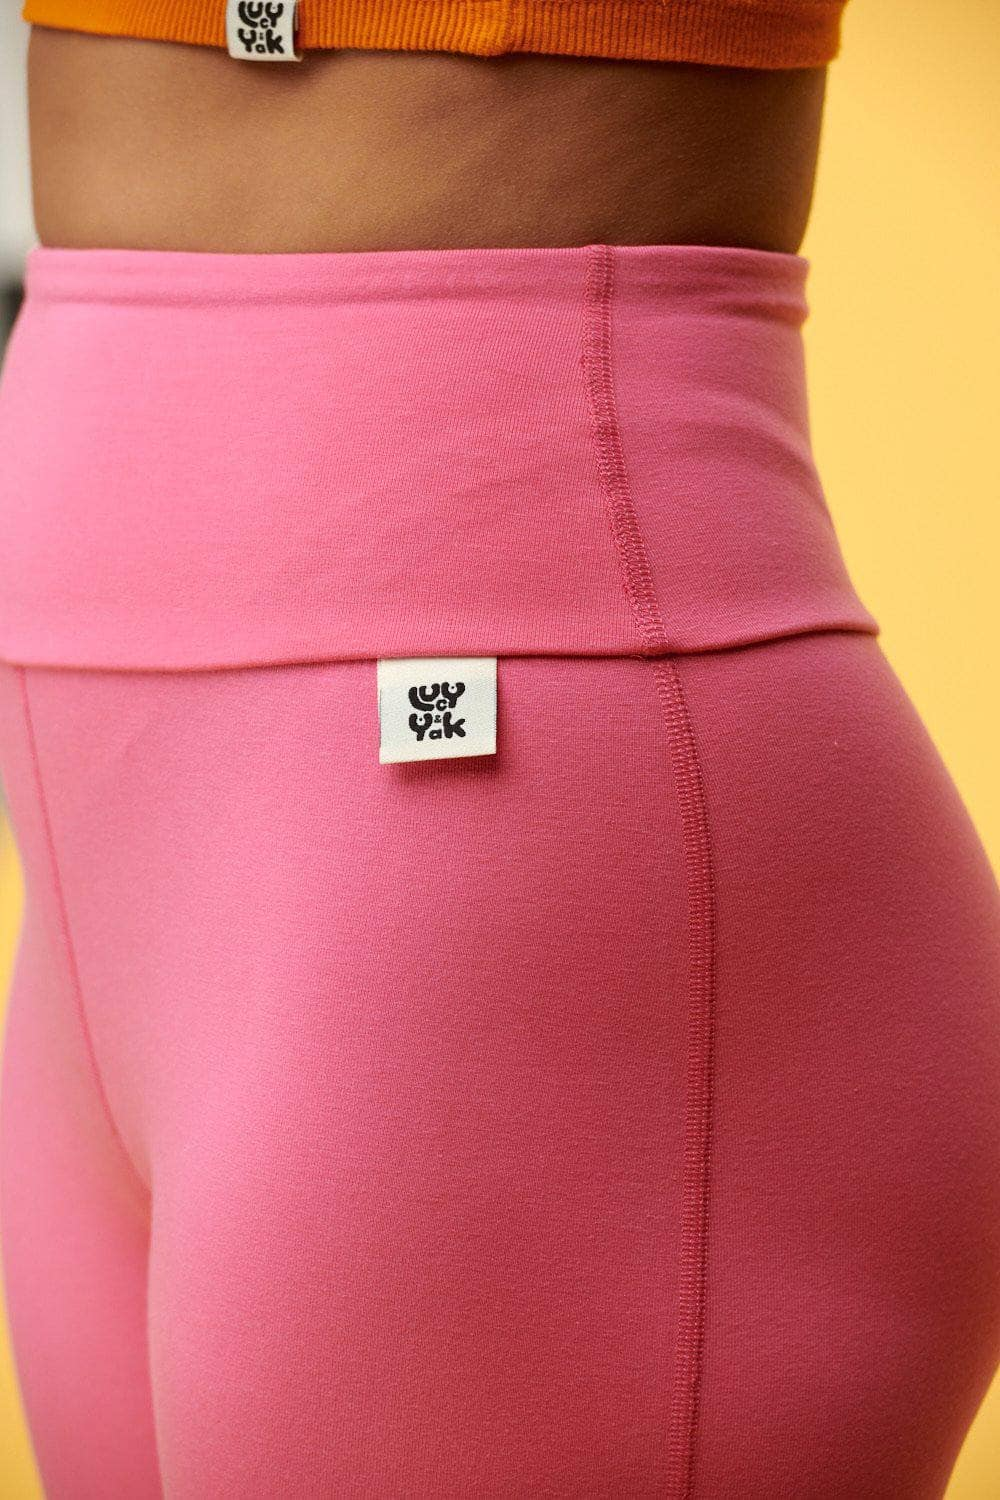 Lucy & Yak Leggings 'Wye' Tencel Leggings in Taffy Pink